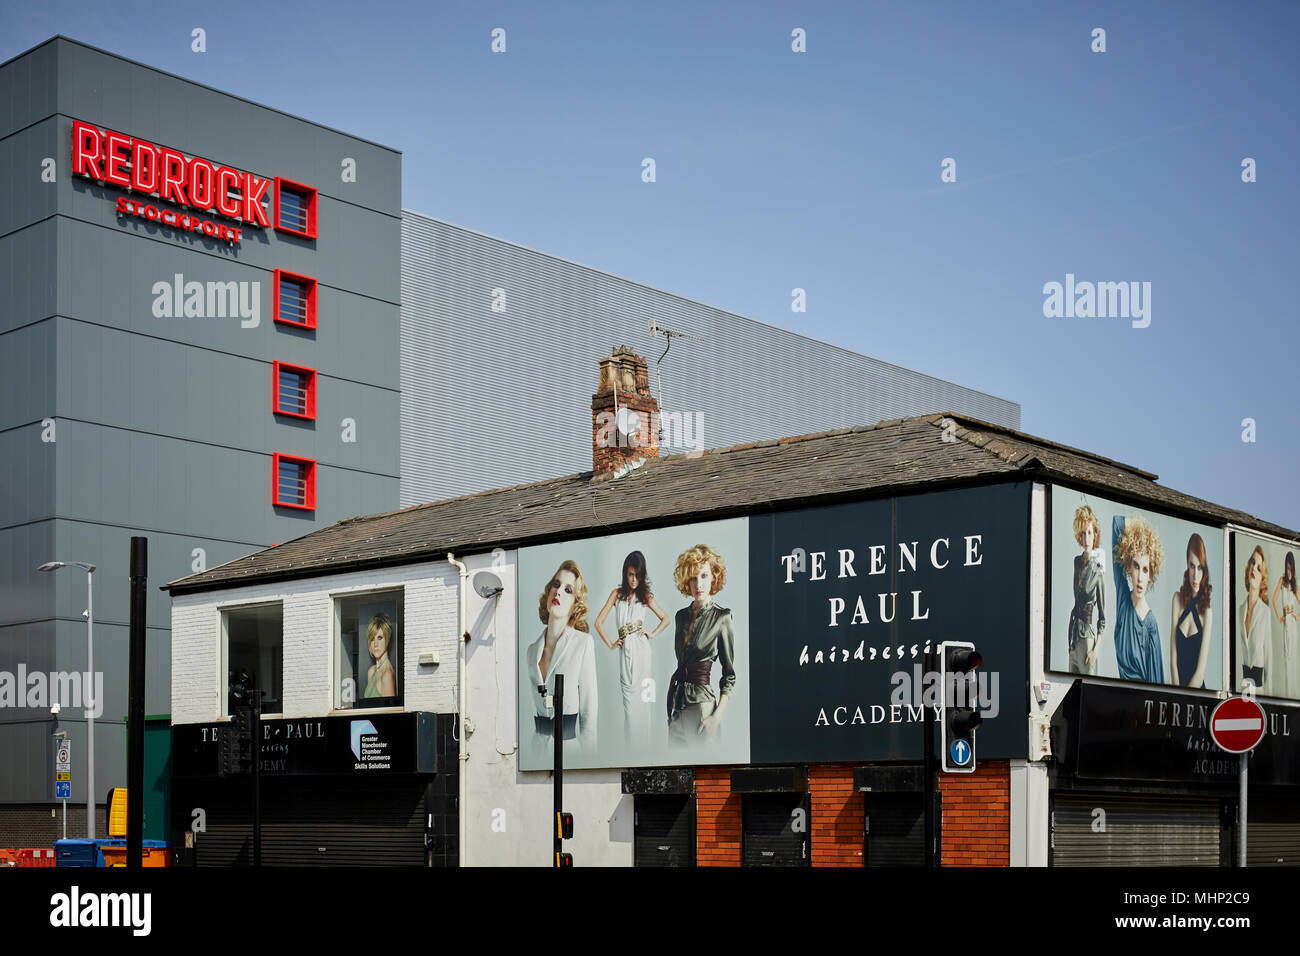 Stockport town centre, Merseyway Redrock development from princess Street - Stock Image